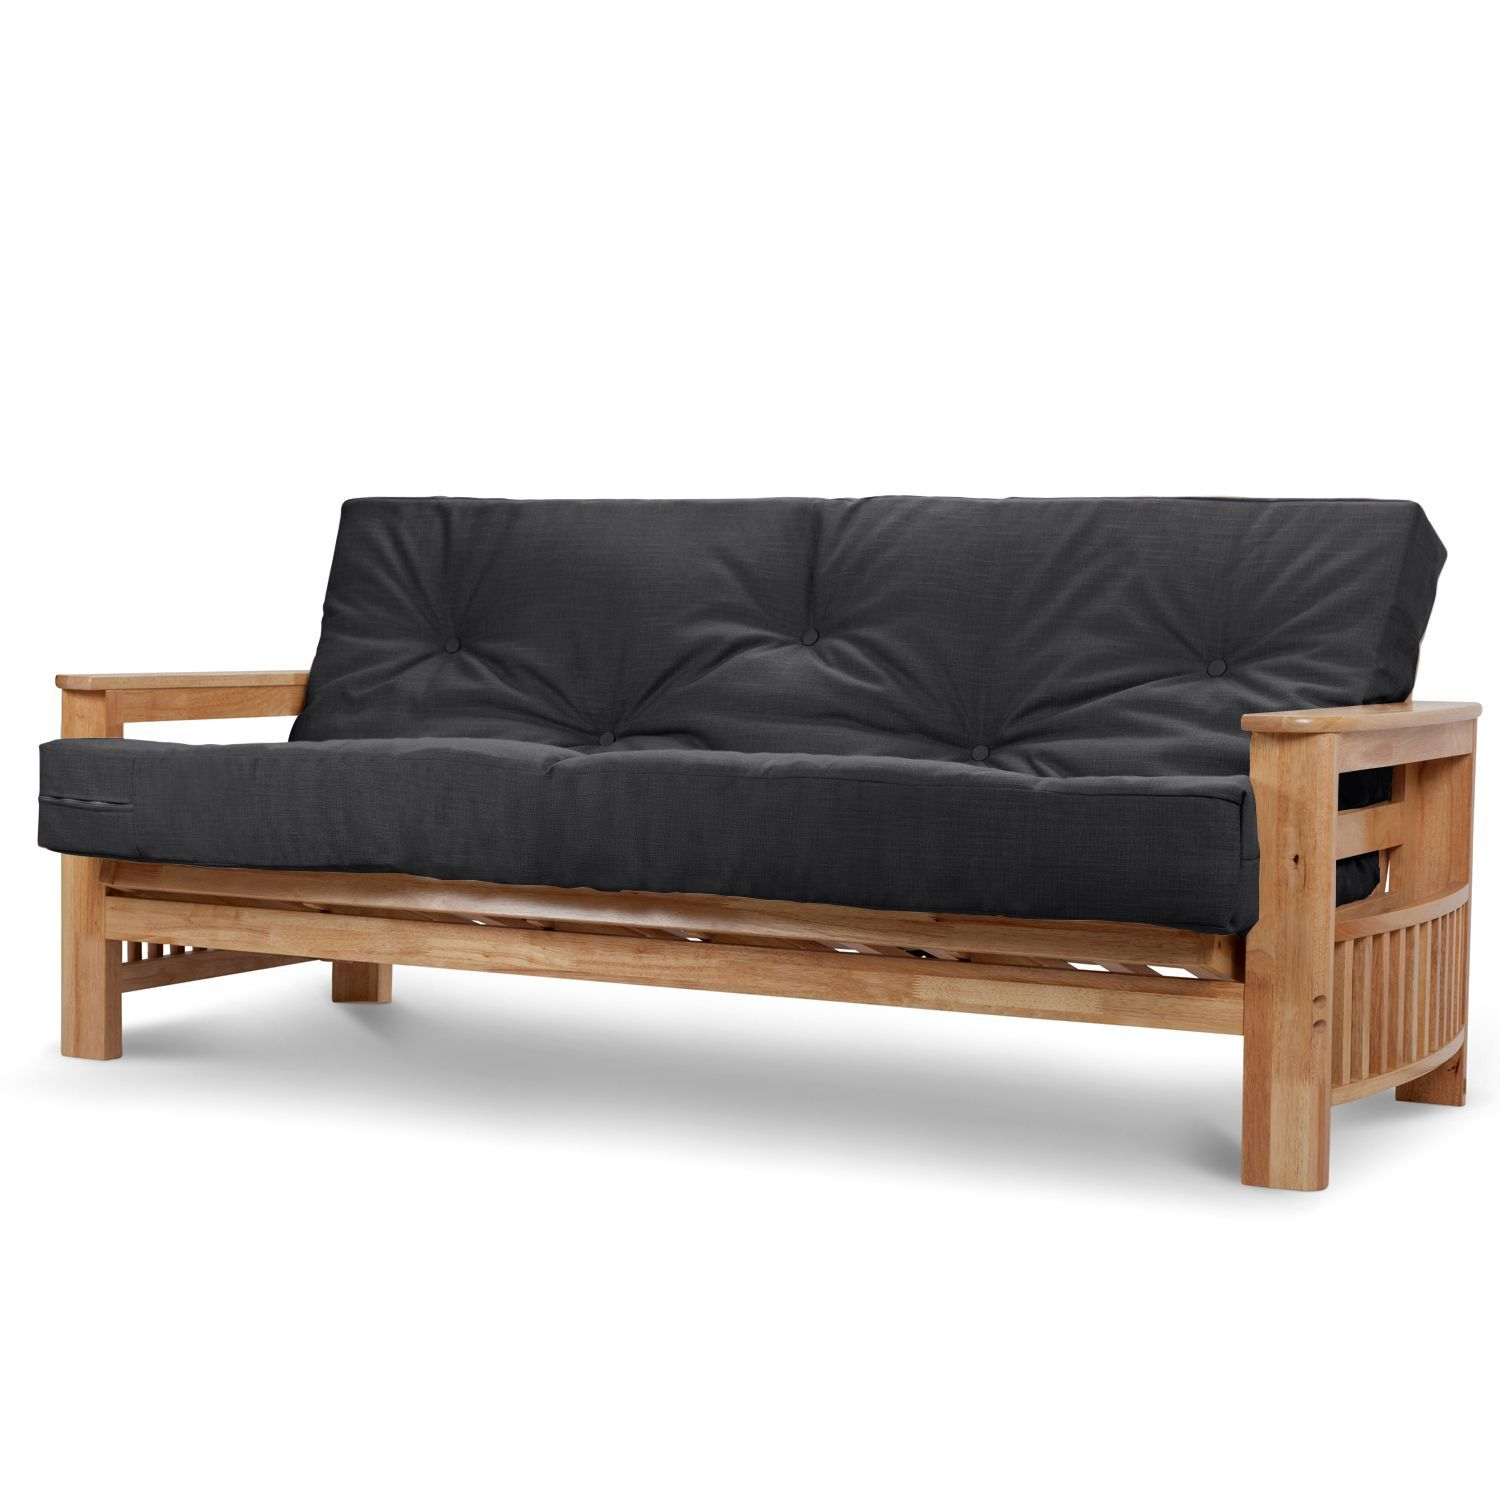 jasmin 3 seater futon next day delivery jasmin 3 seater futon